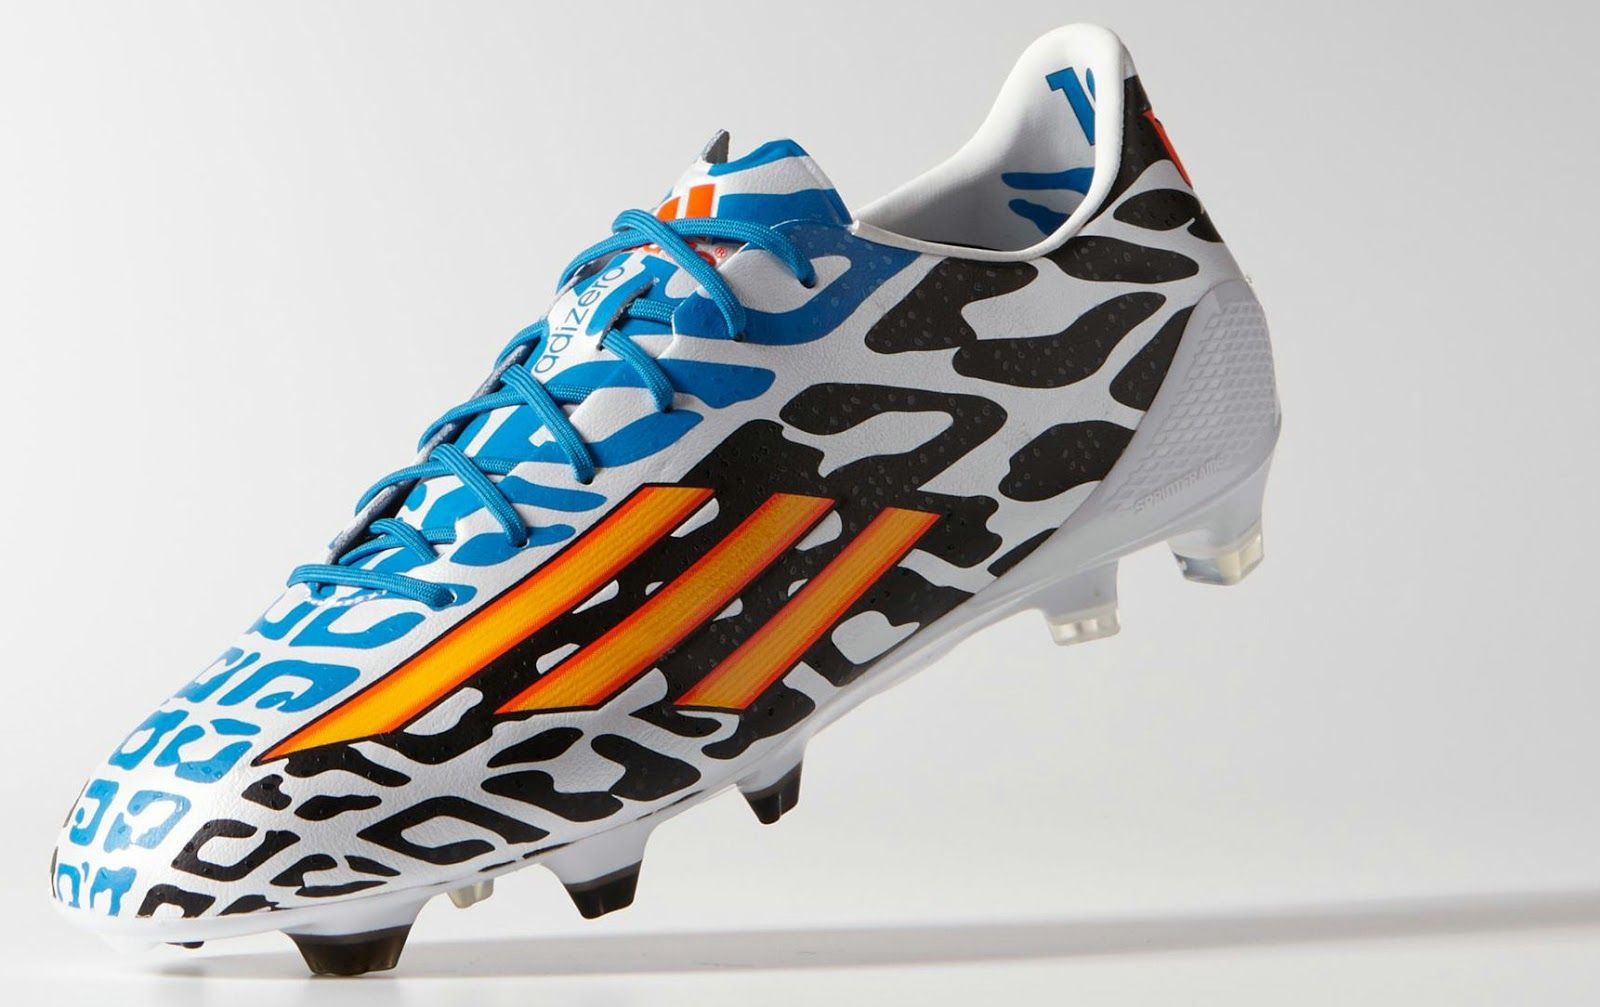 promo code 5401c b10b8 These Are Messi s Cleats that he wore in the World Cup